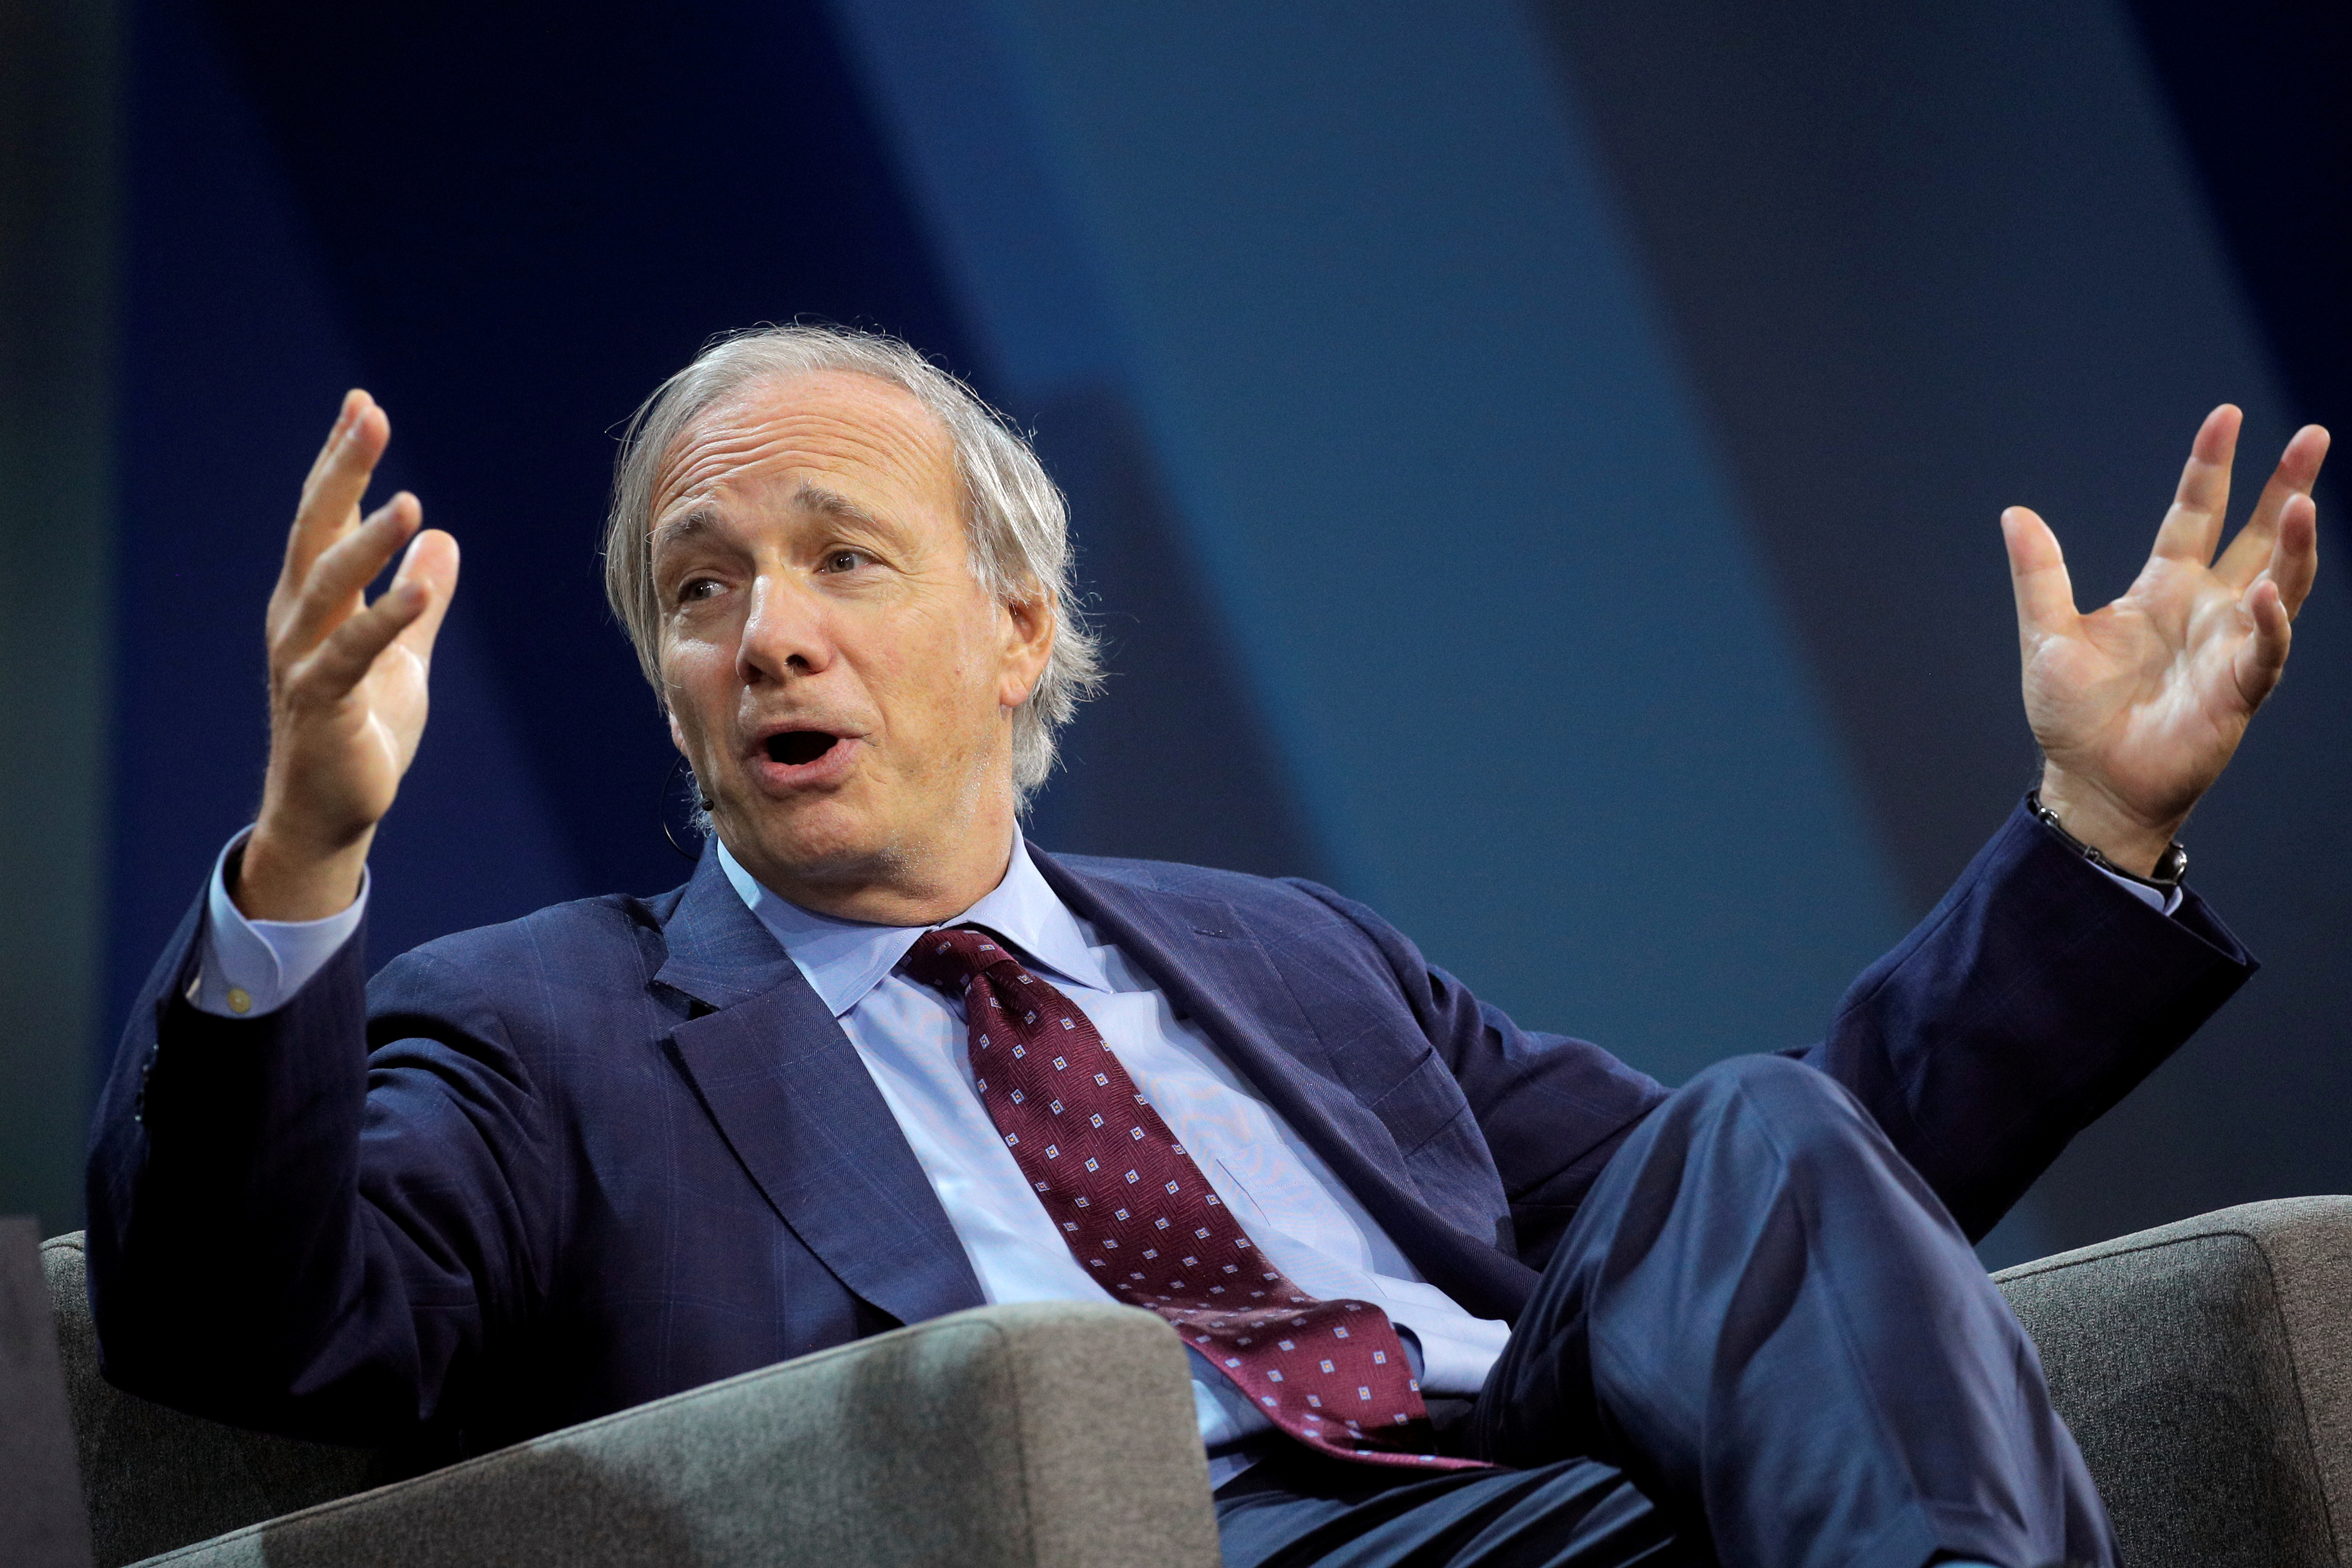 Ray Dalio, Bridgewater's co-chairman and co-chief investment officer, speaks during the Skybridge Capital SALT New York 2021 conference in New York City, U.S., September 15, 2021.  REUTERS/Brendan McDermid